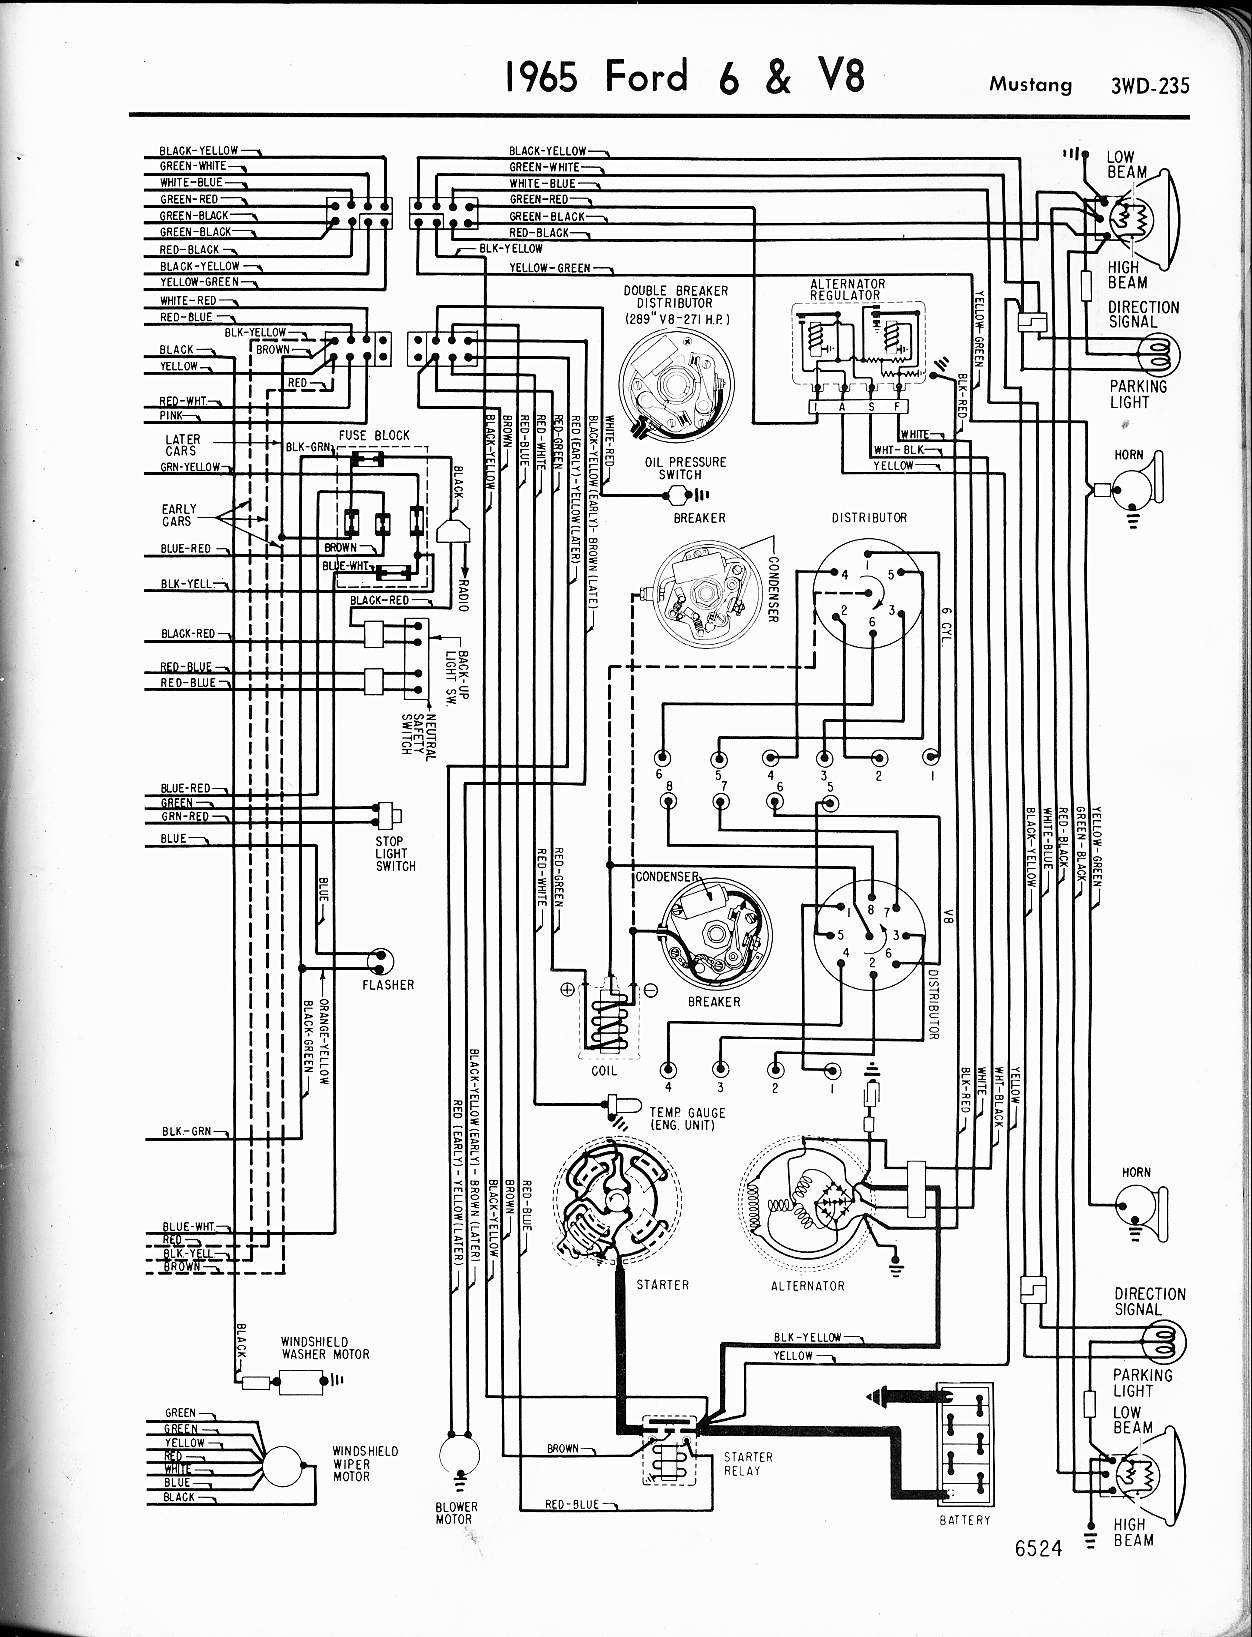 wiring diagram 69 mustang wiring diagram rh blaknwyt co 65 mustang engine wiring diagram 65 mustang alternator wiring diagram